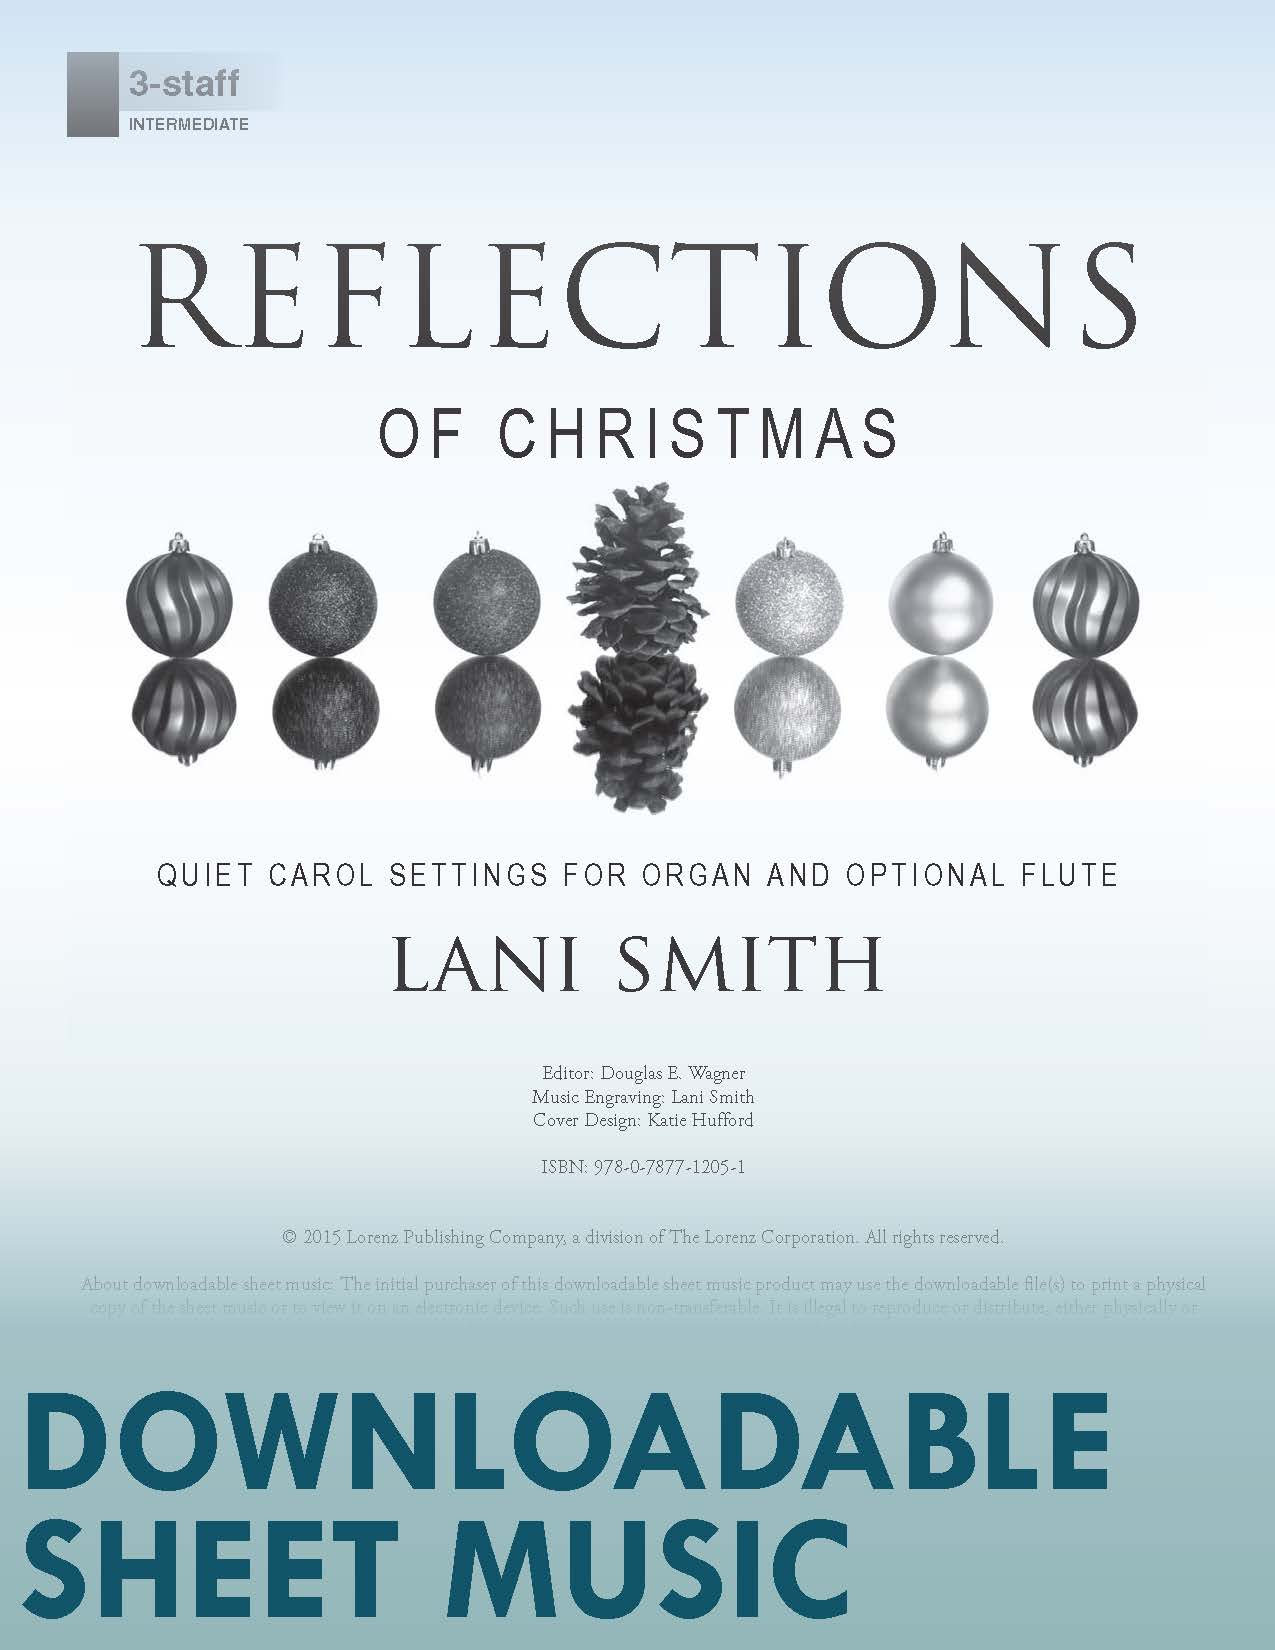 Reflections of Christmas - Digital Download